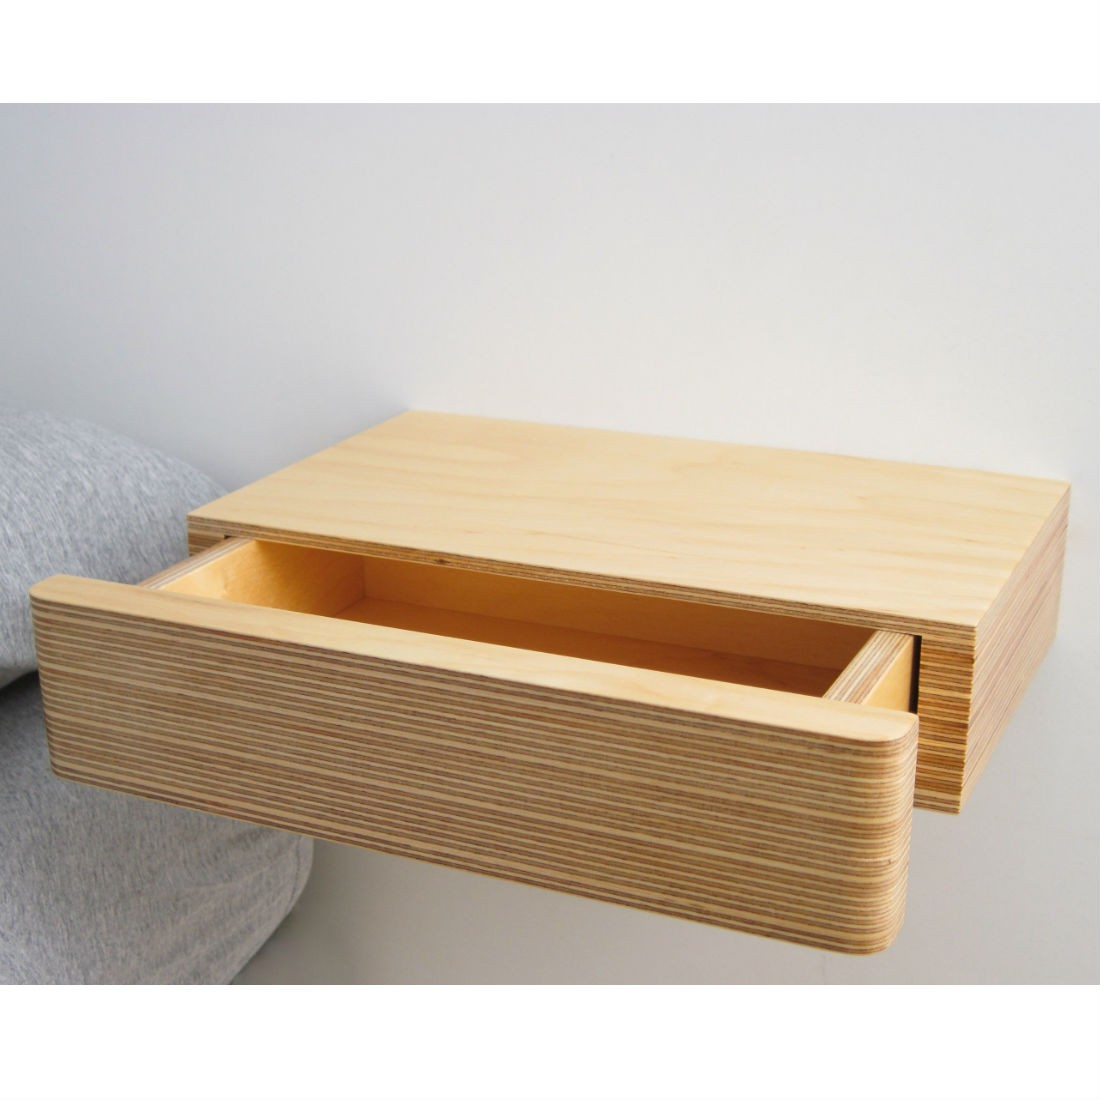 Pacco Floating Drawer From Mocha Fresh Design Blog